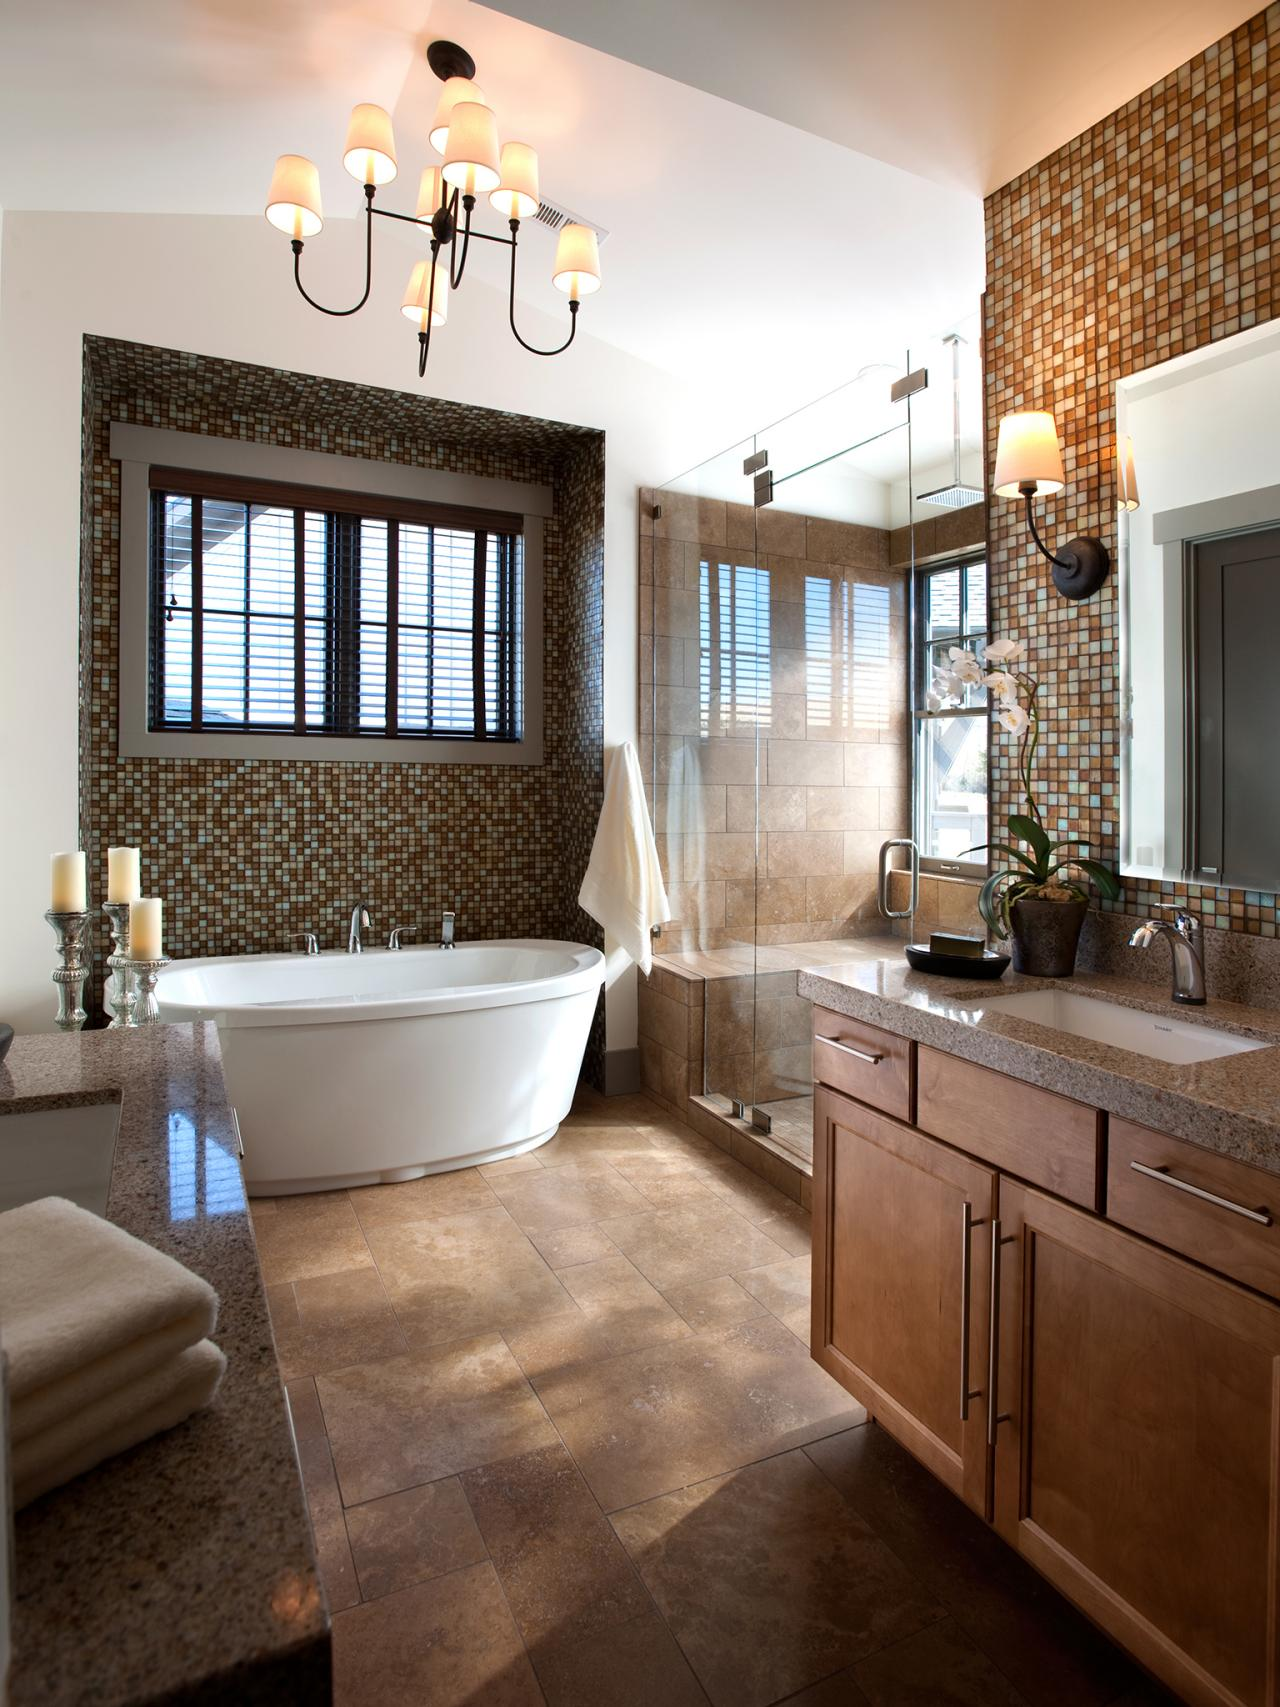 Pictures of beautiful luxury bathtubs ideas for Beautiful bathrooms